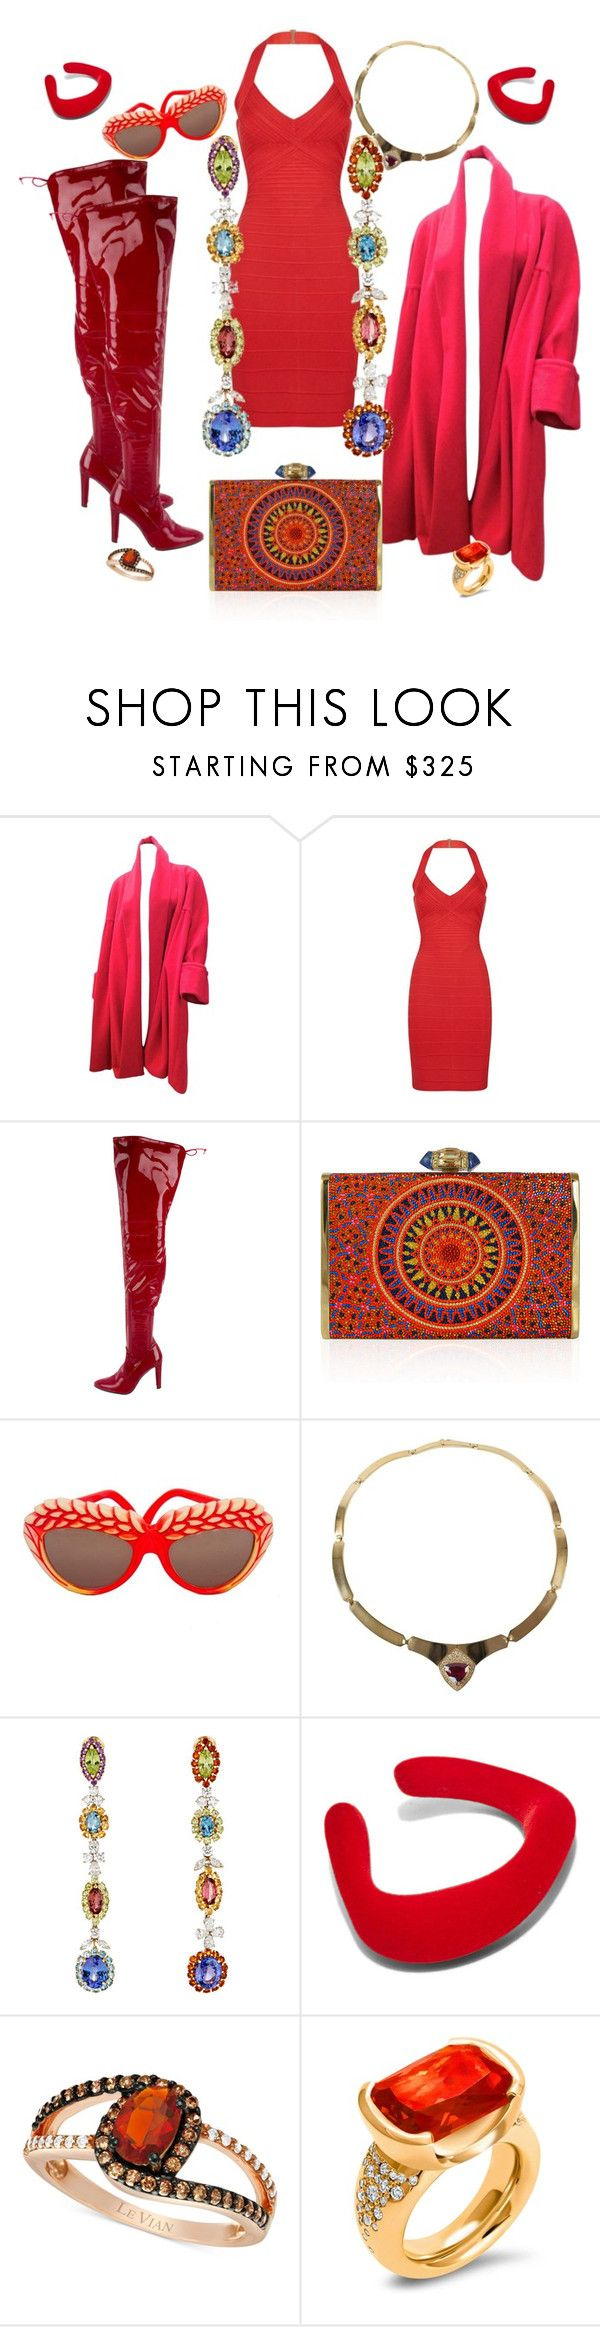 """It's raining RED"" by jeniferkcarsrud ❤ liked on Polyvore featuring Chanel, Hervé Léger, Stuart Weitzman, Judith Leiber, Isabel Canovas, Sidney Garber, Ribeyron, LE VIAN and Hargreaves Stockholm"